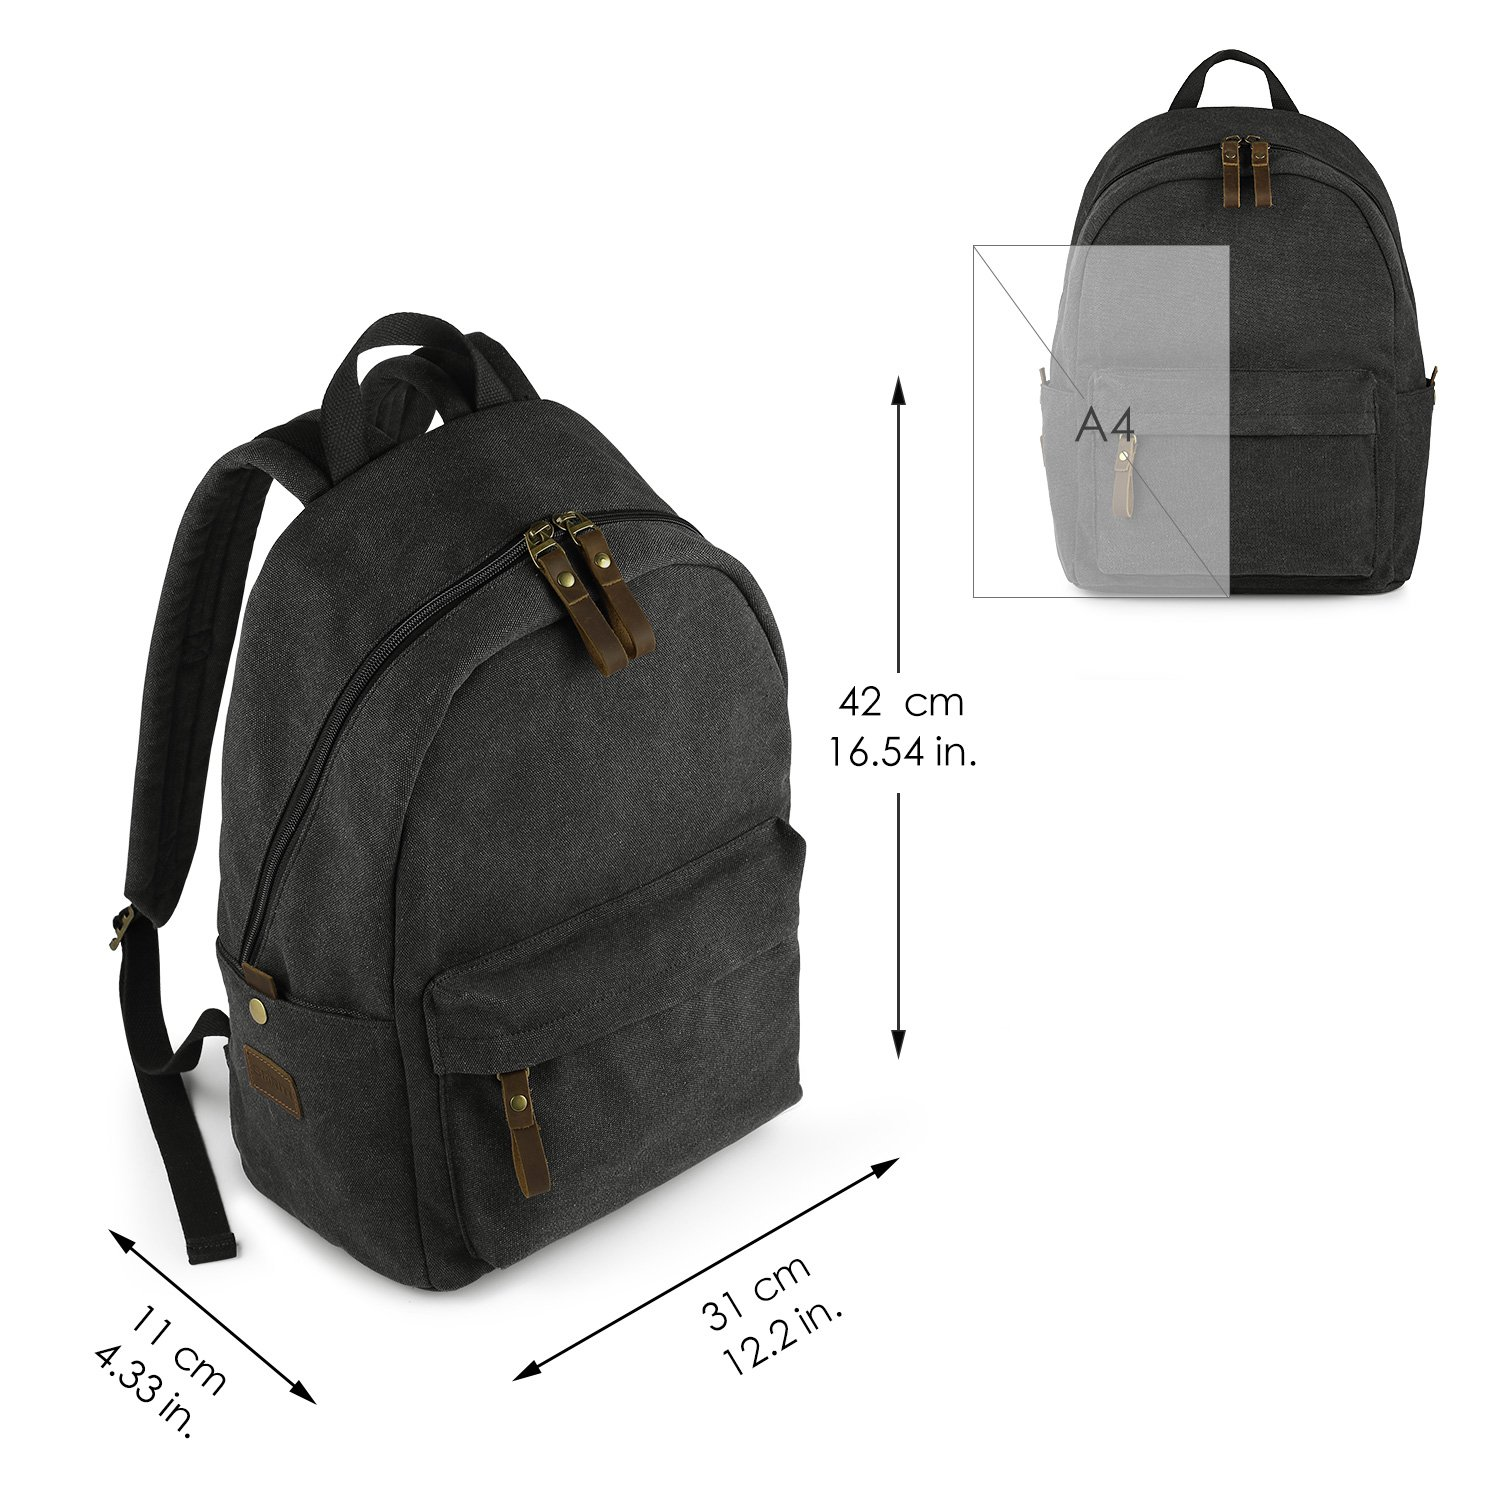 SMRITI Canvas 15.6 inch Laptop Backpack Casual Daypack for School Work and Travel - Dark Grey by SMRITI (Image #4)